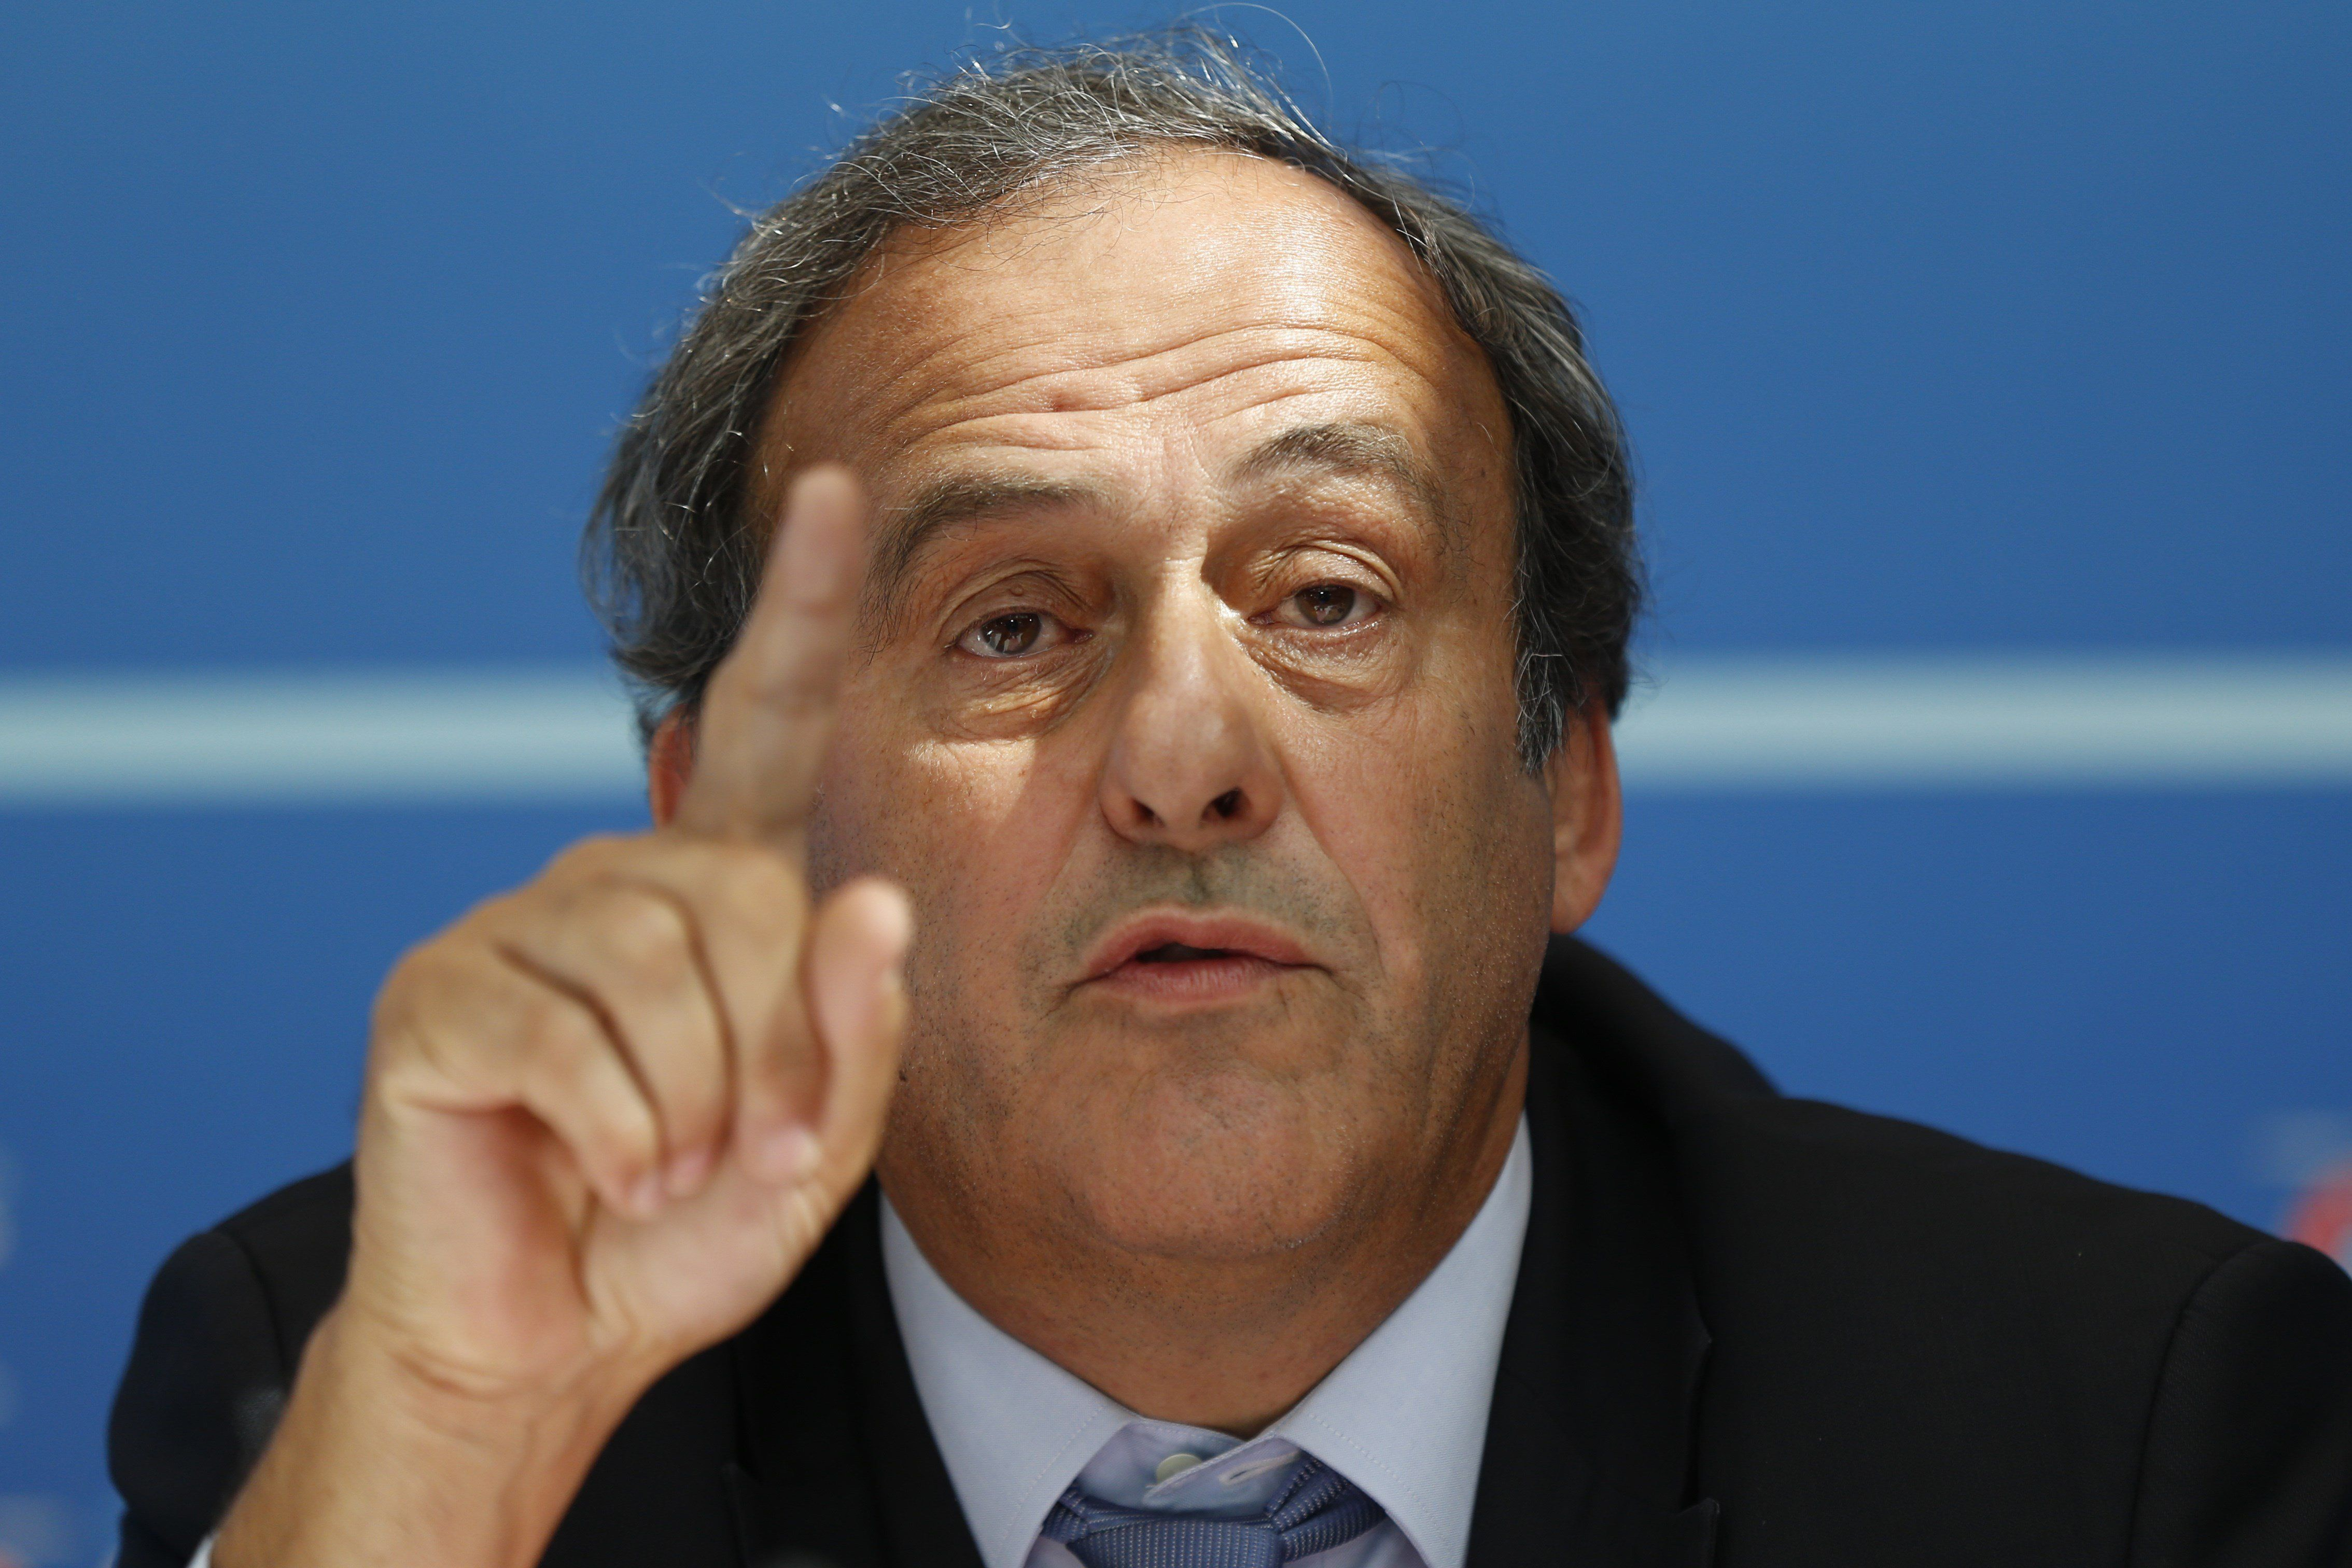 UEFA chief Michel Platini speaks during a UEFA press conference after the draw for the UEFA Europa League football group stage 2015/16 on August 28, 2015 in Monaco.  AFP PHOTO / VALERY HACHE        (Photo credit should read VALERY HACHE/AFP/Getty Images)